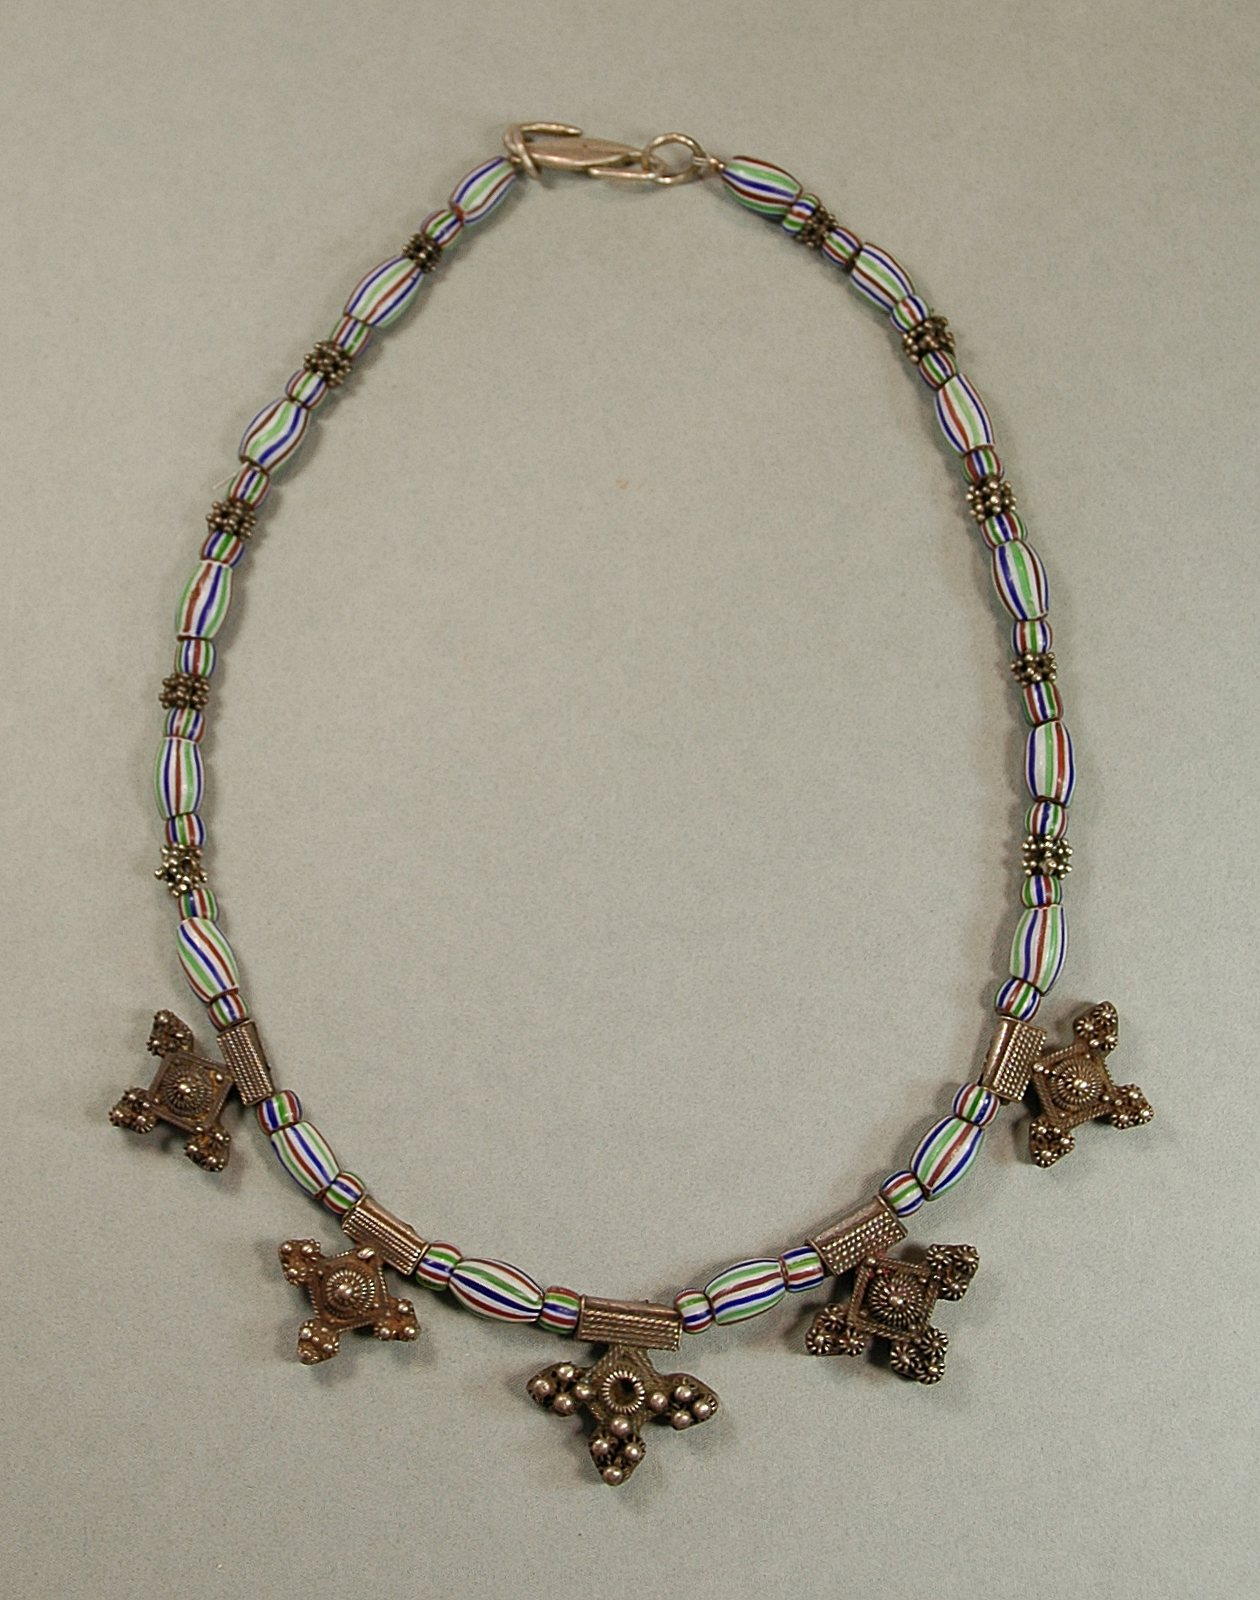 Necklace: Berber silver crosses, Jemen silver, Murano beads